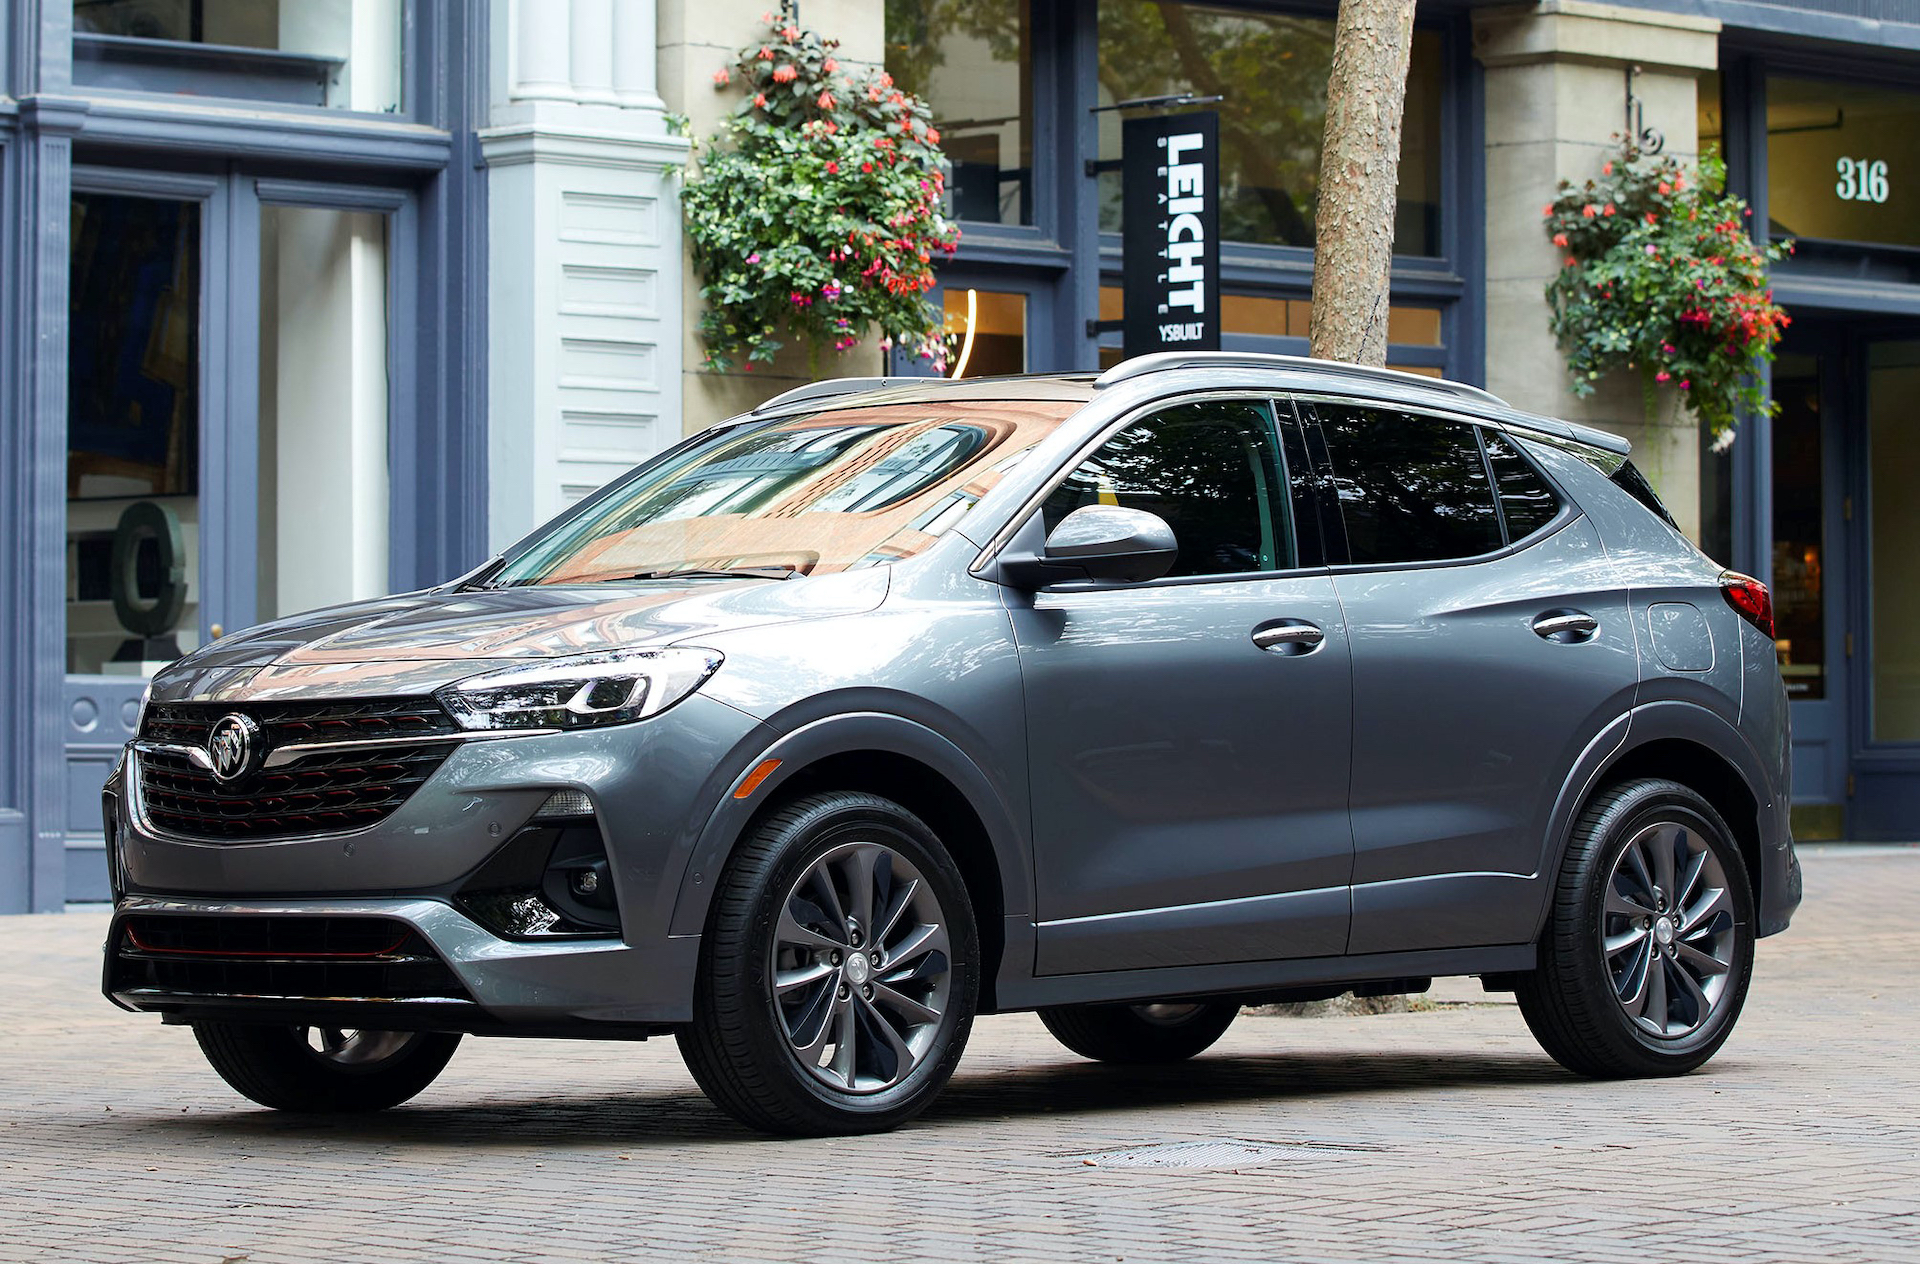 2021 Buick Encore Gx Review, New York Auto Show Canceled New 2022 Buick Encore Gx Test Drive, Engine, Reviews